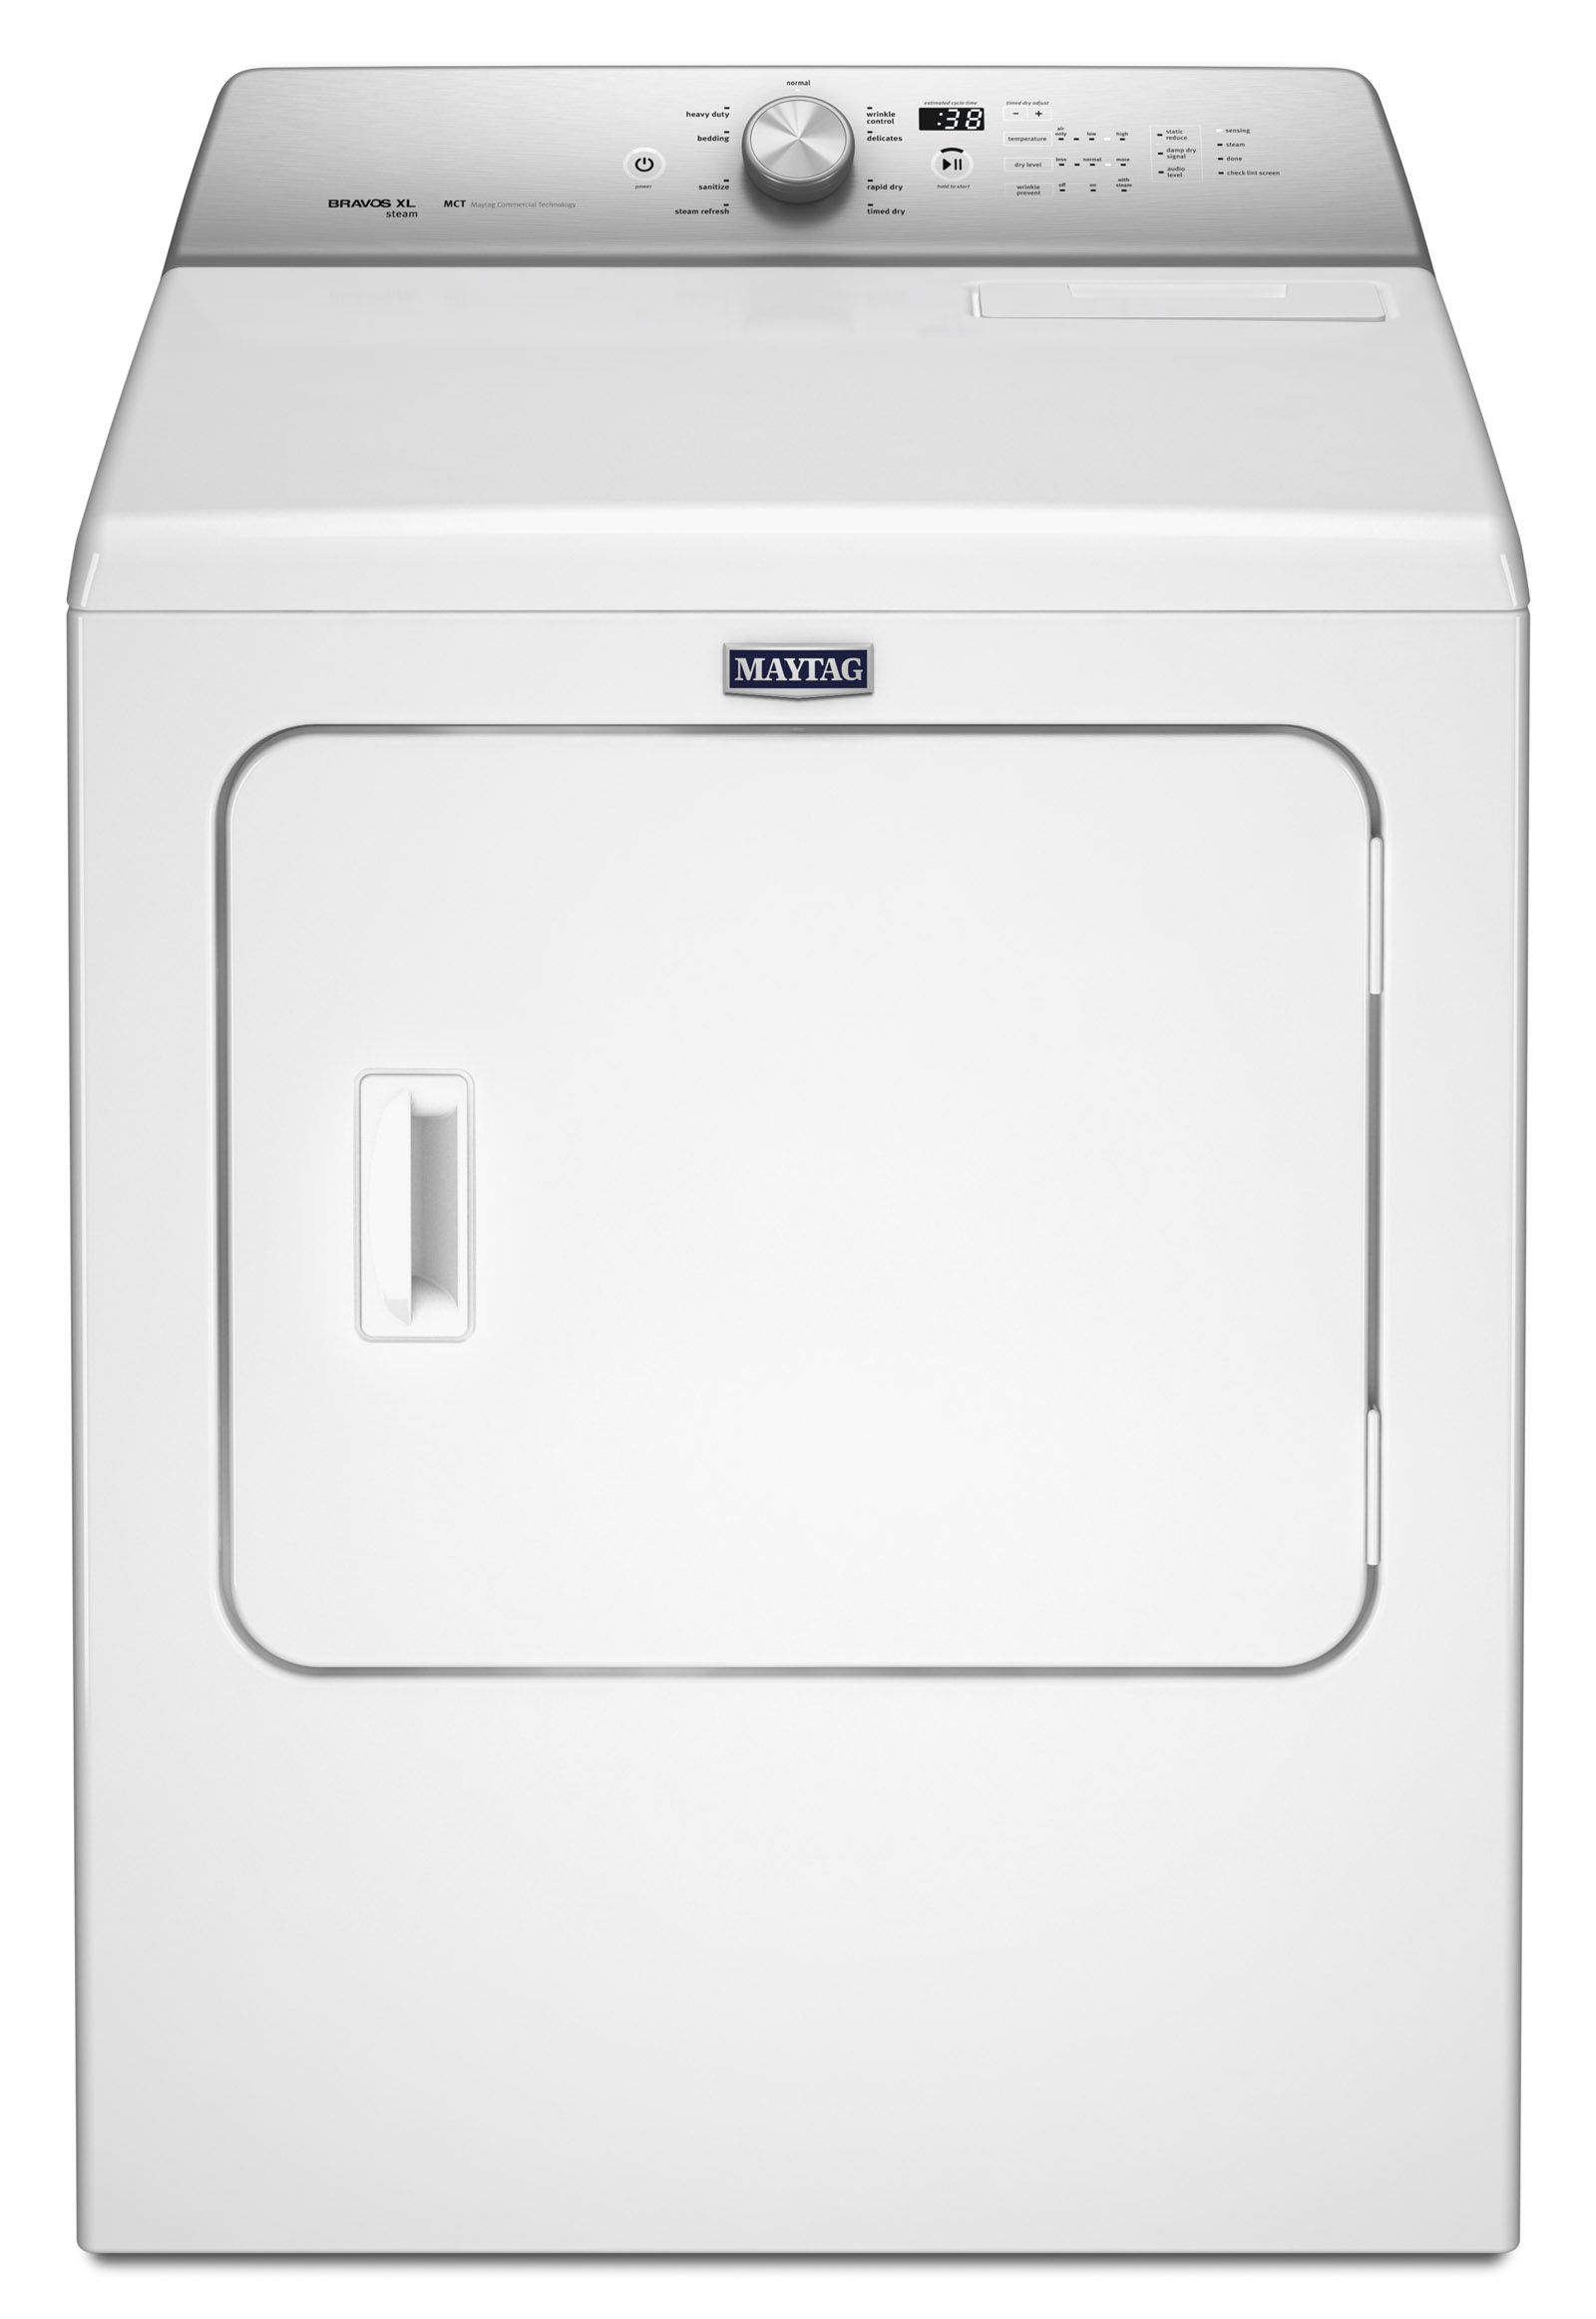 Maytag MGDB755DW 7.0 cu. ft. Gas Dryer - White